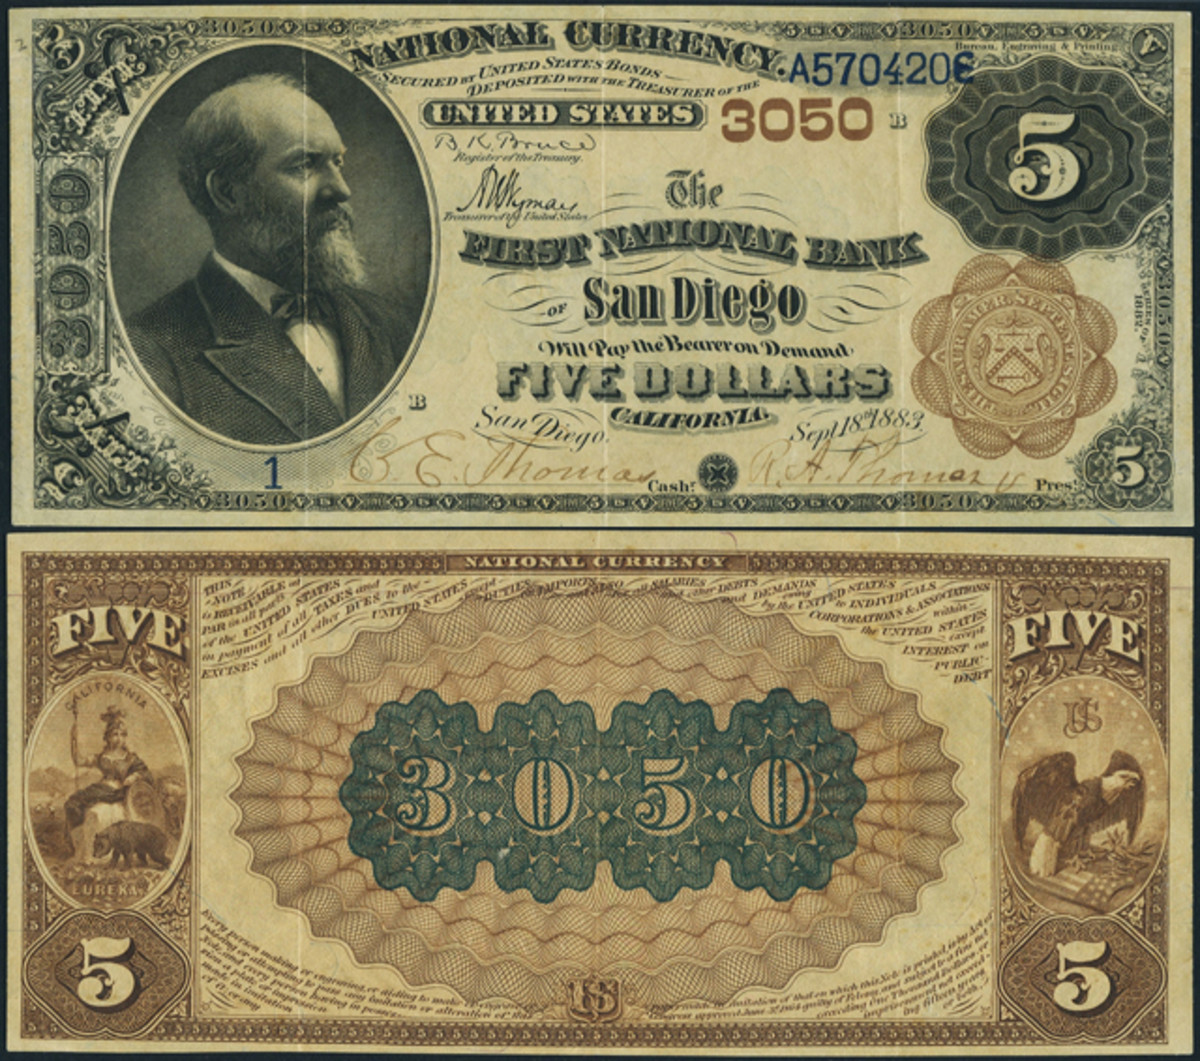 A newly discovered No. 1 The First National Bank of San Diego, Calif., Brown Back $5.